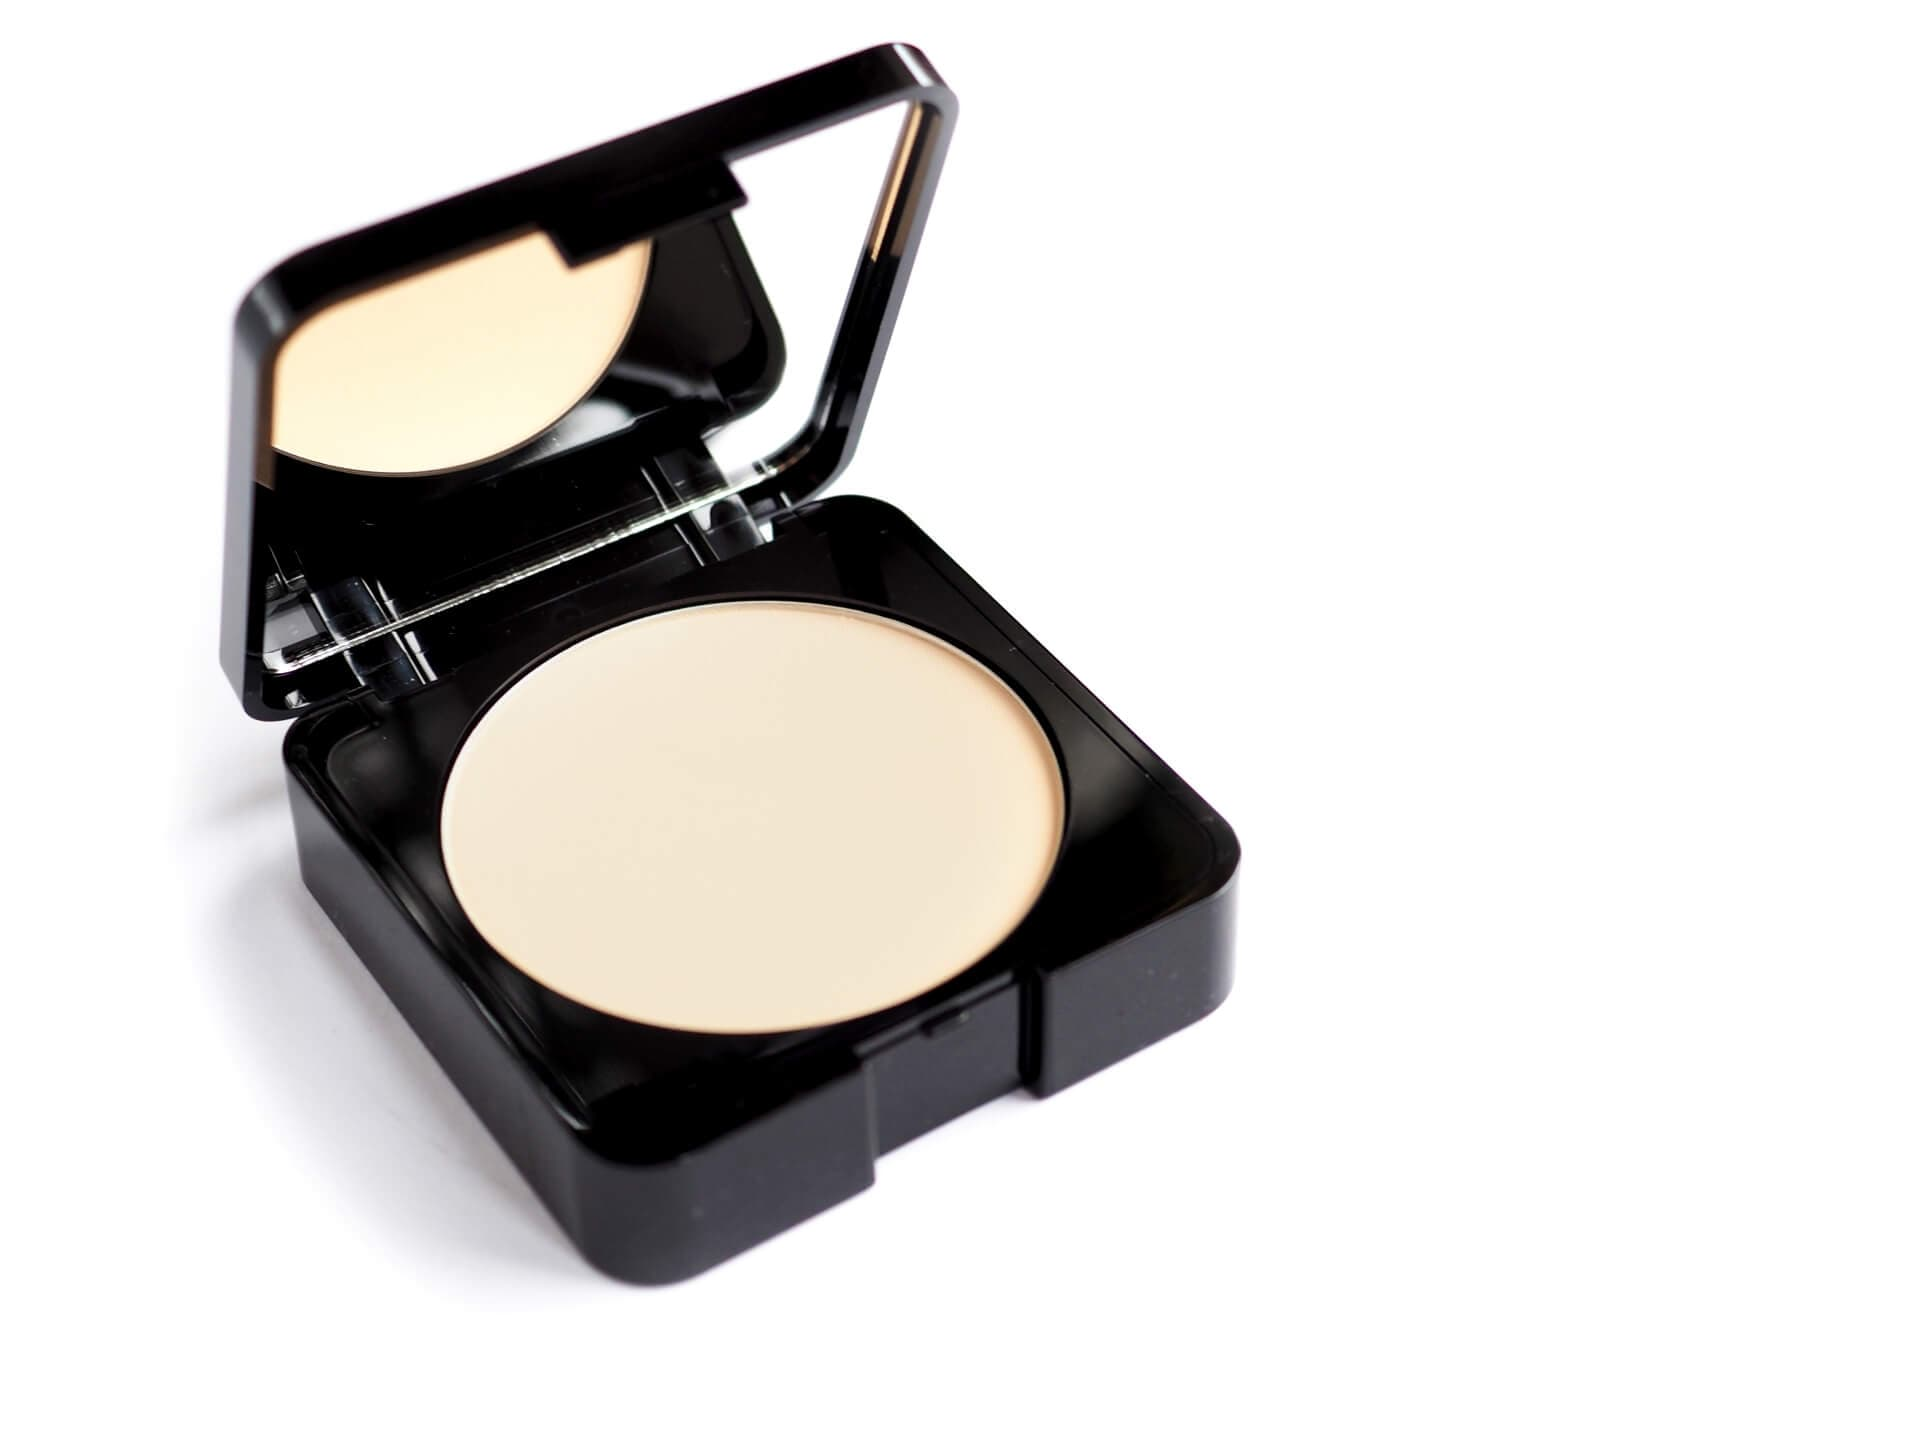 SinSkin Covering & Mattifyingn Face Powder